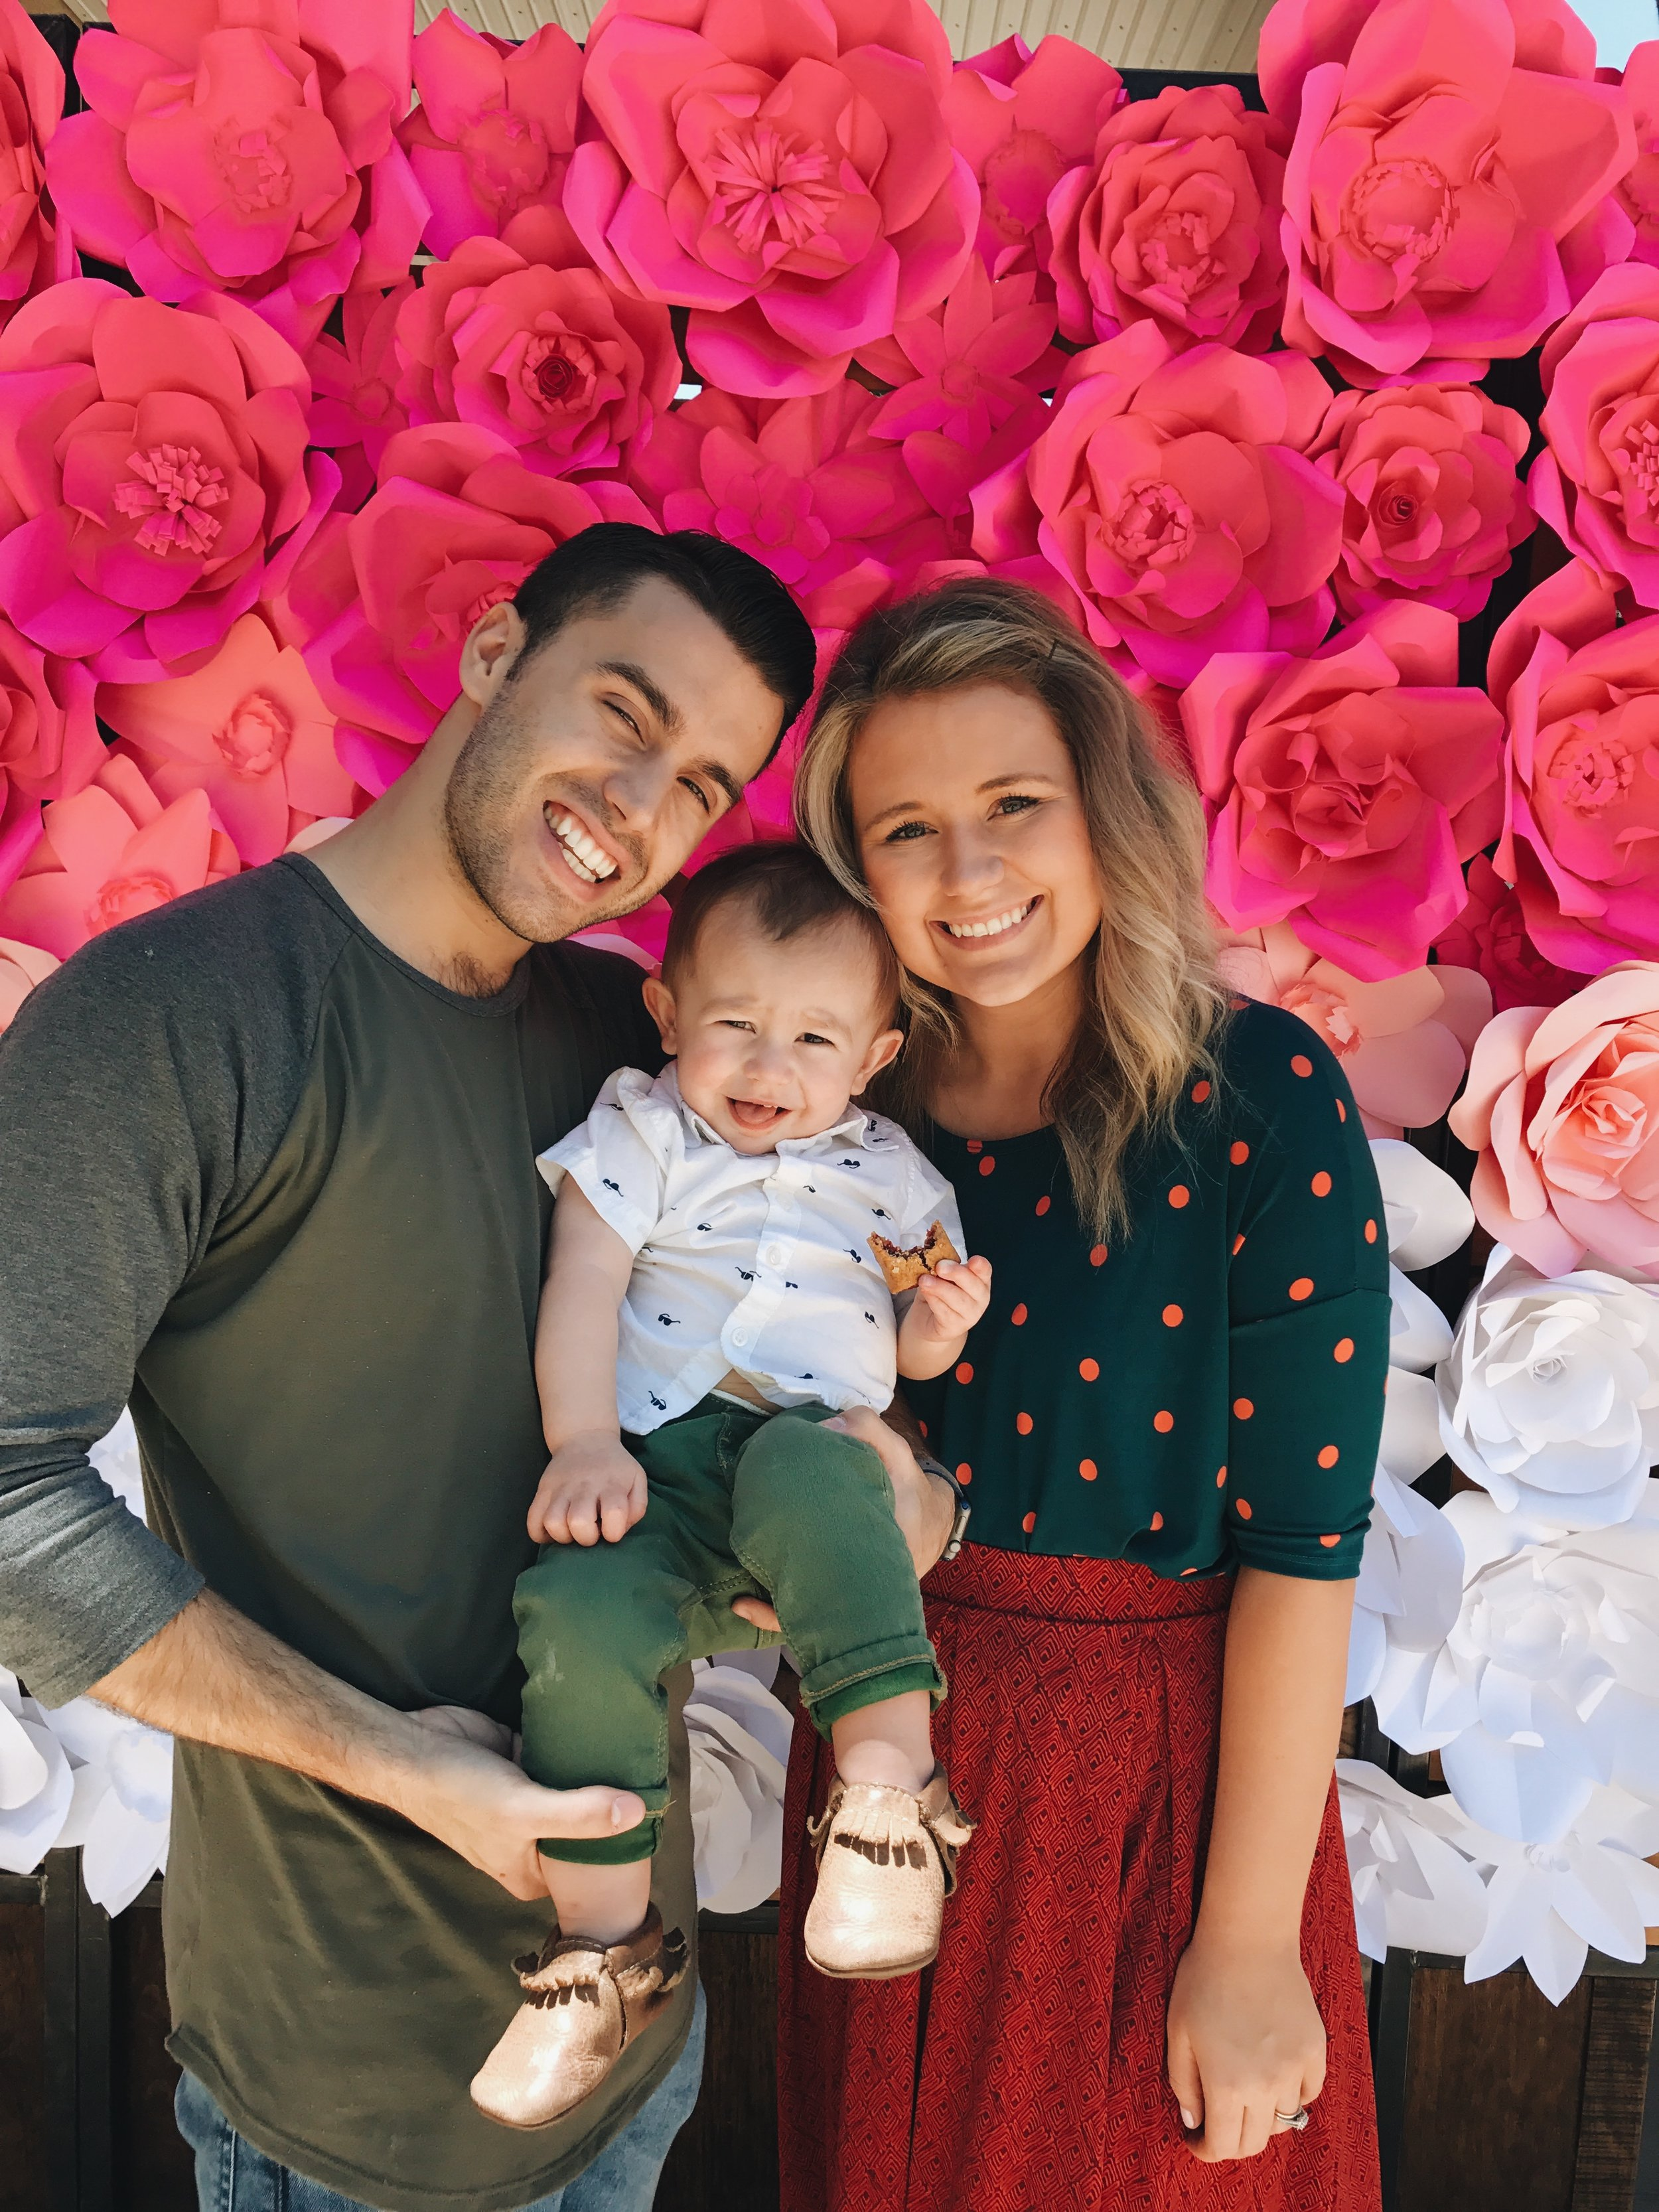 Hey, y'all, - I'm Elisha!I was born in East Texas, grew up in North Texas and now I live in good 'ole Austin, Texas! I am married to the love of my life, Blake. He is a Worship Pastor and if we aren't at the church you can find me at home, in my yoga pants, reheating my coffee while chasing around our little boy, Judah Beau. Tacos & Frank Sinatra are my jam and if I weren't a wife, mama or photographer, I would be a Disney Princess at Disney World because why not?I am all about natural light and capturing moments from the extravagantly beautiful to the beautiful in the mundane. I am all for posed smiles but I love raw, real, intimate, and fun moments even more.Jesus Christ is my savior and He is why I run my business the way I do.In all things,I hope to glorify Him above anything else.I believe that The Lord has given me a gift to capture moments in life that are meant to reflect how amazing and good He is.Give me a shout! I would love to hear your story and capture it in the best way I know how.